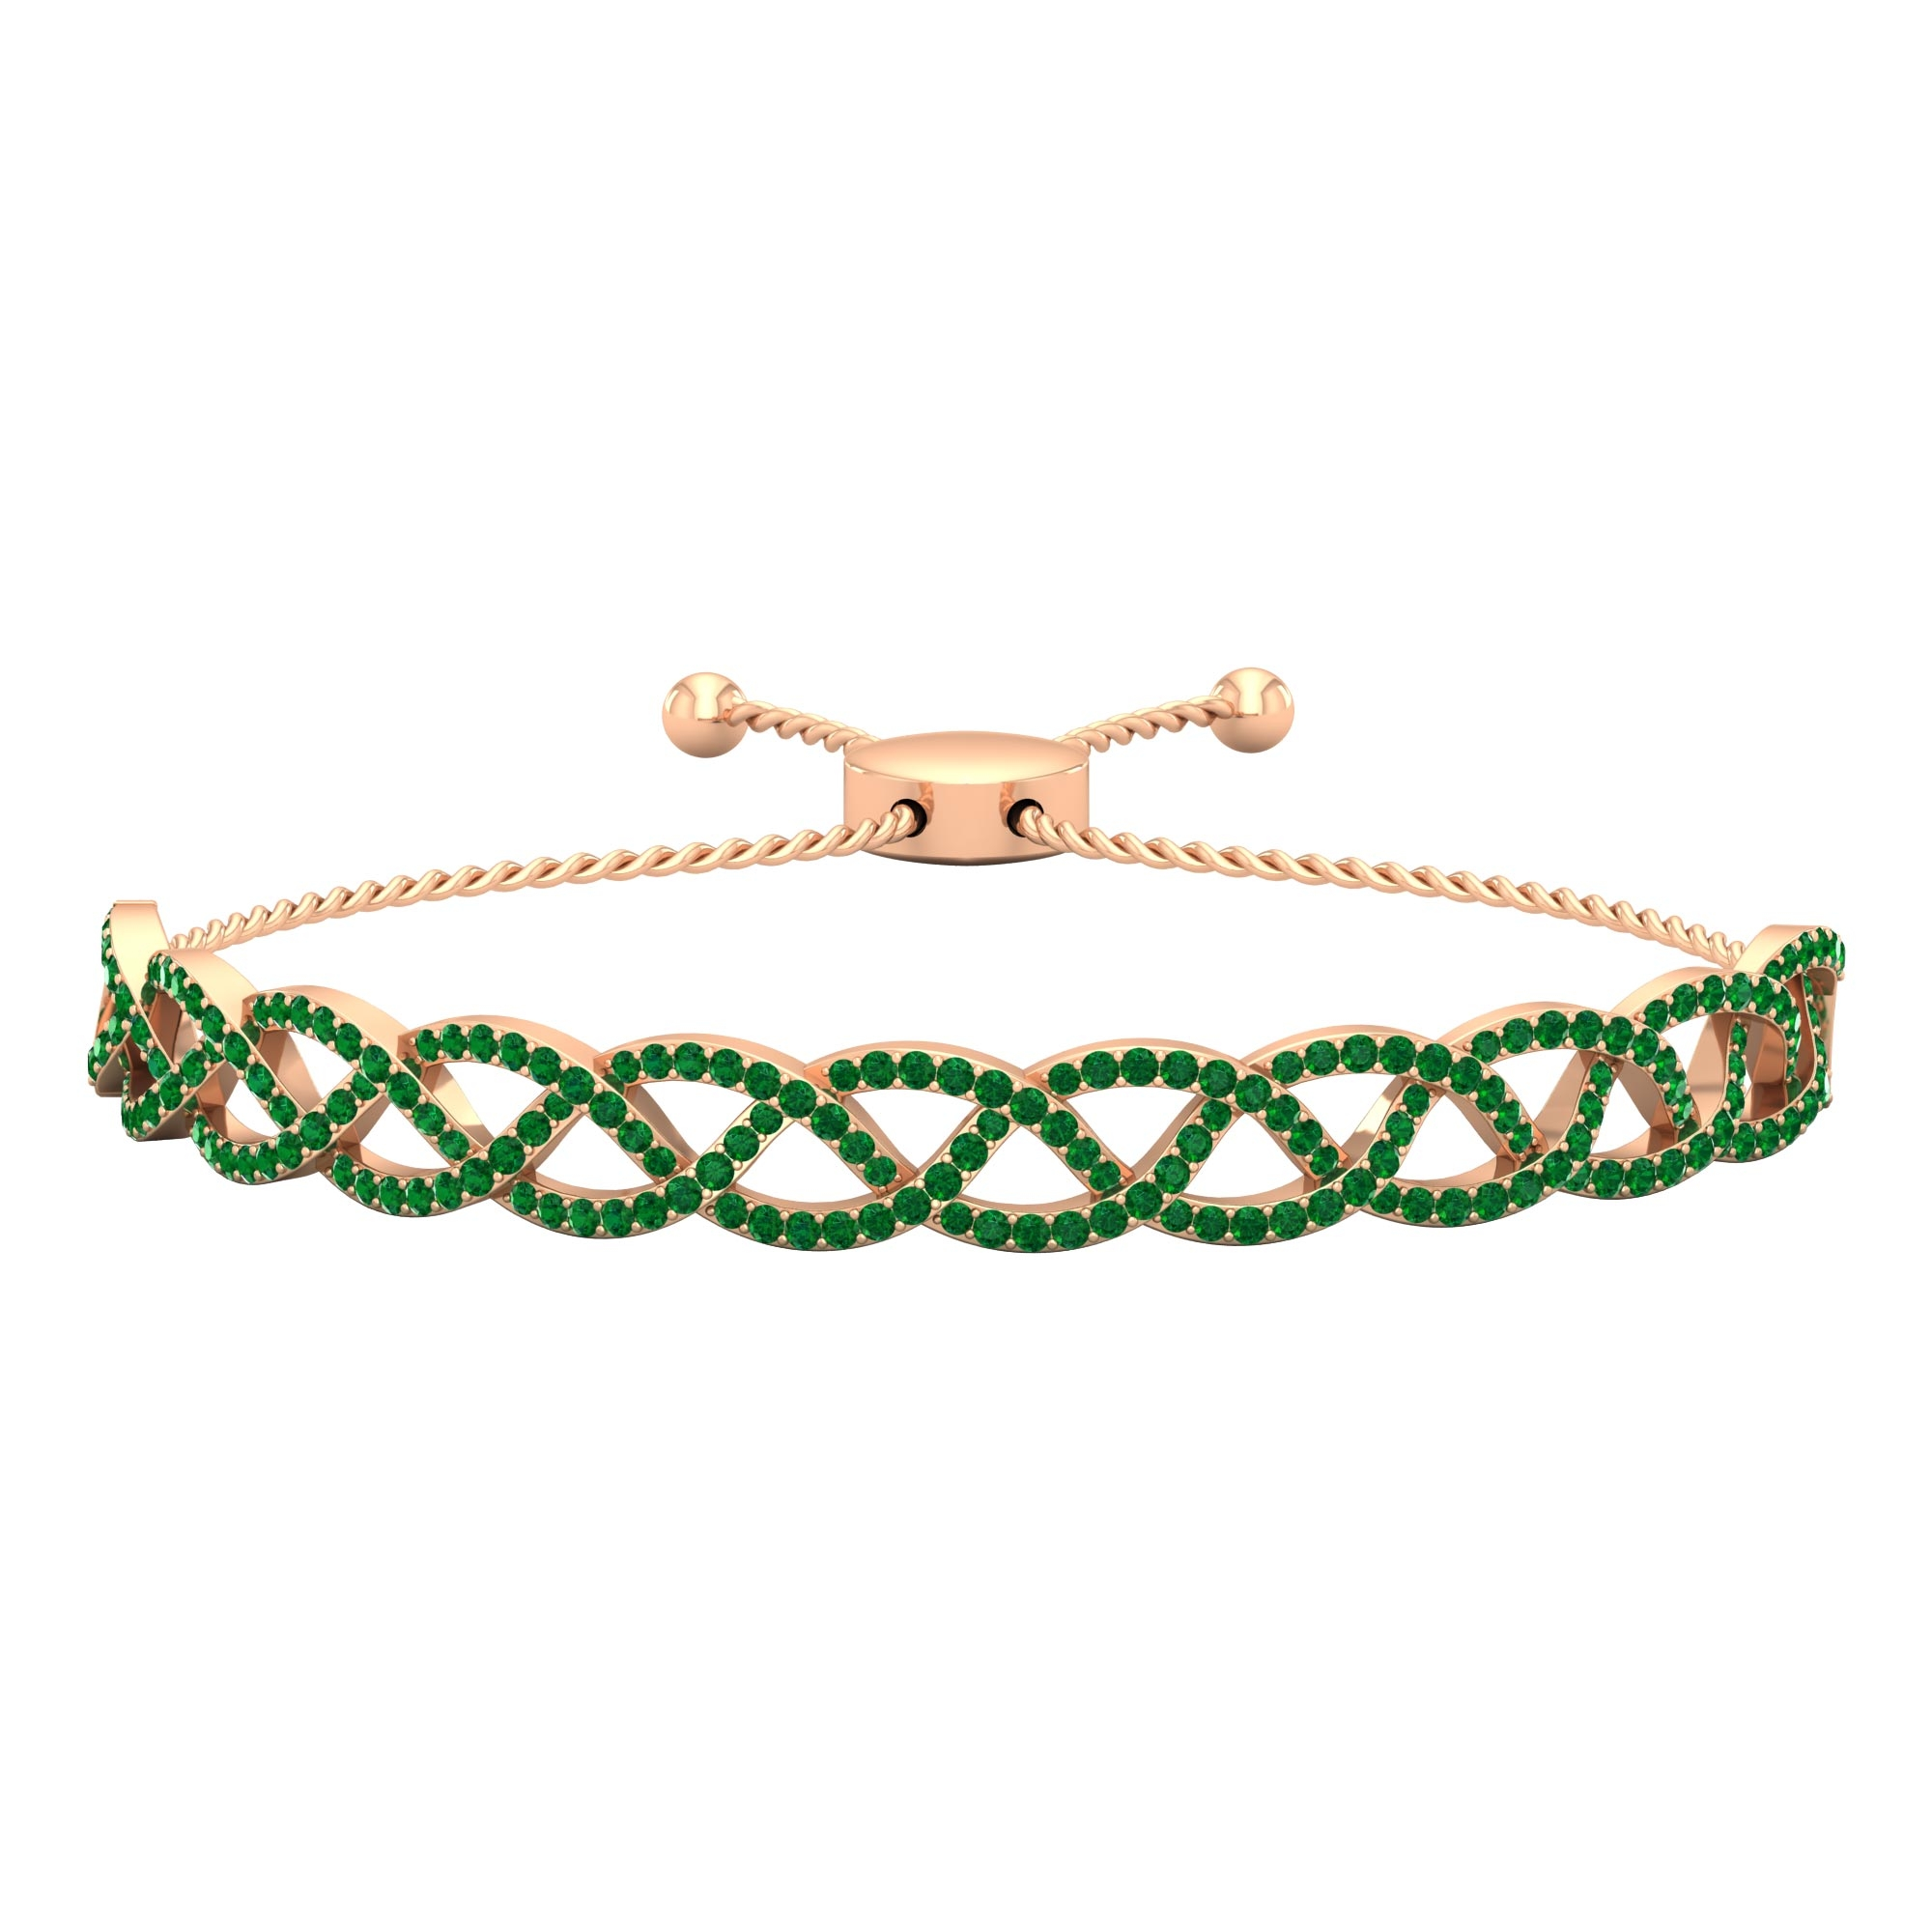 1.75 CT Round Cut Emerald Braided Bangle Bolo Bracelet in Pave Setting